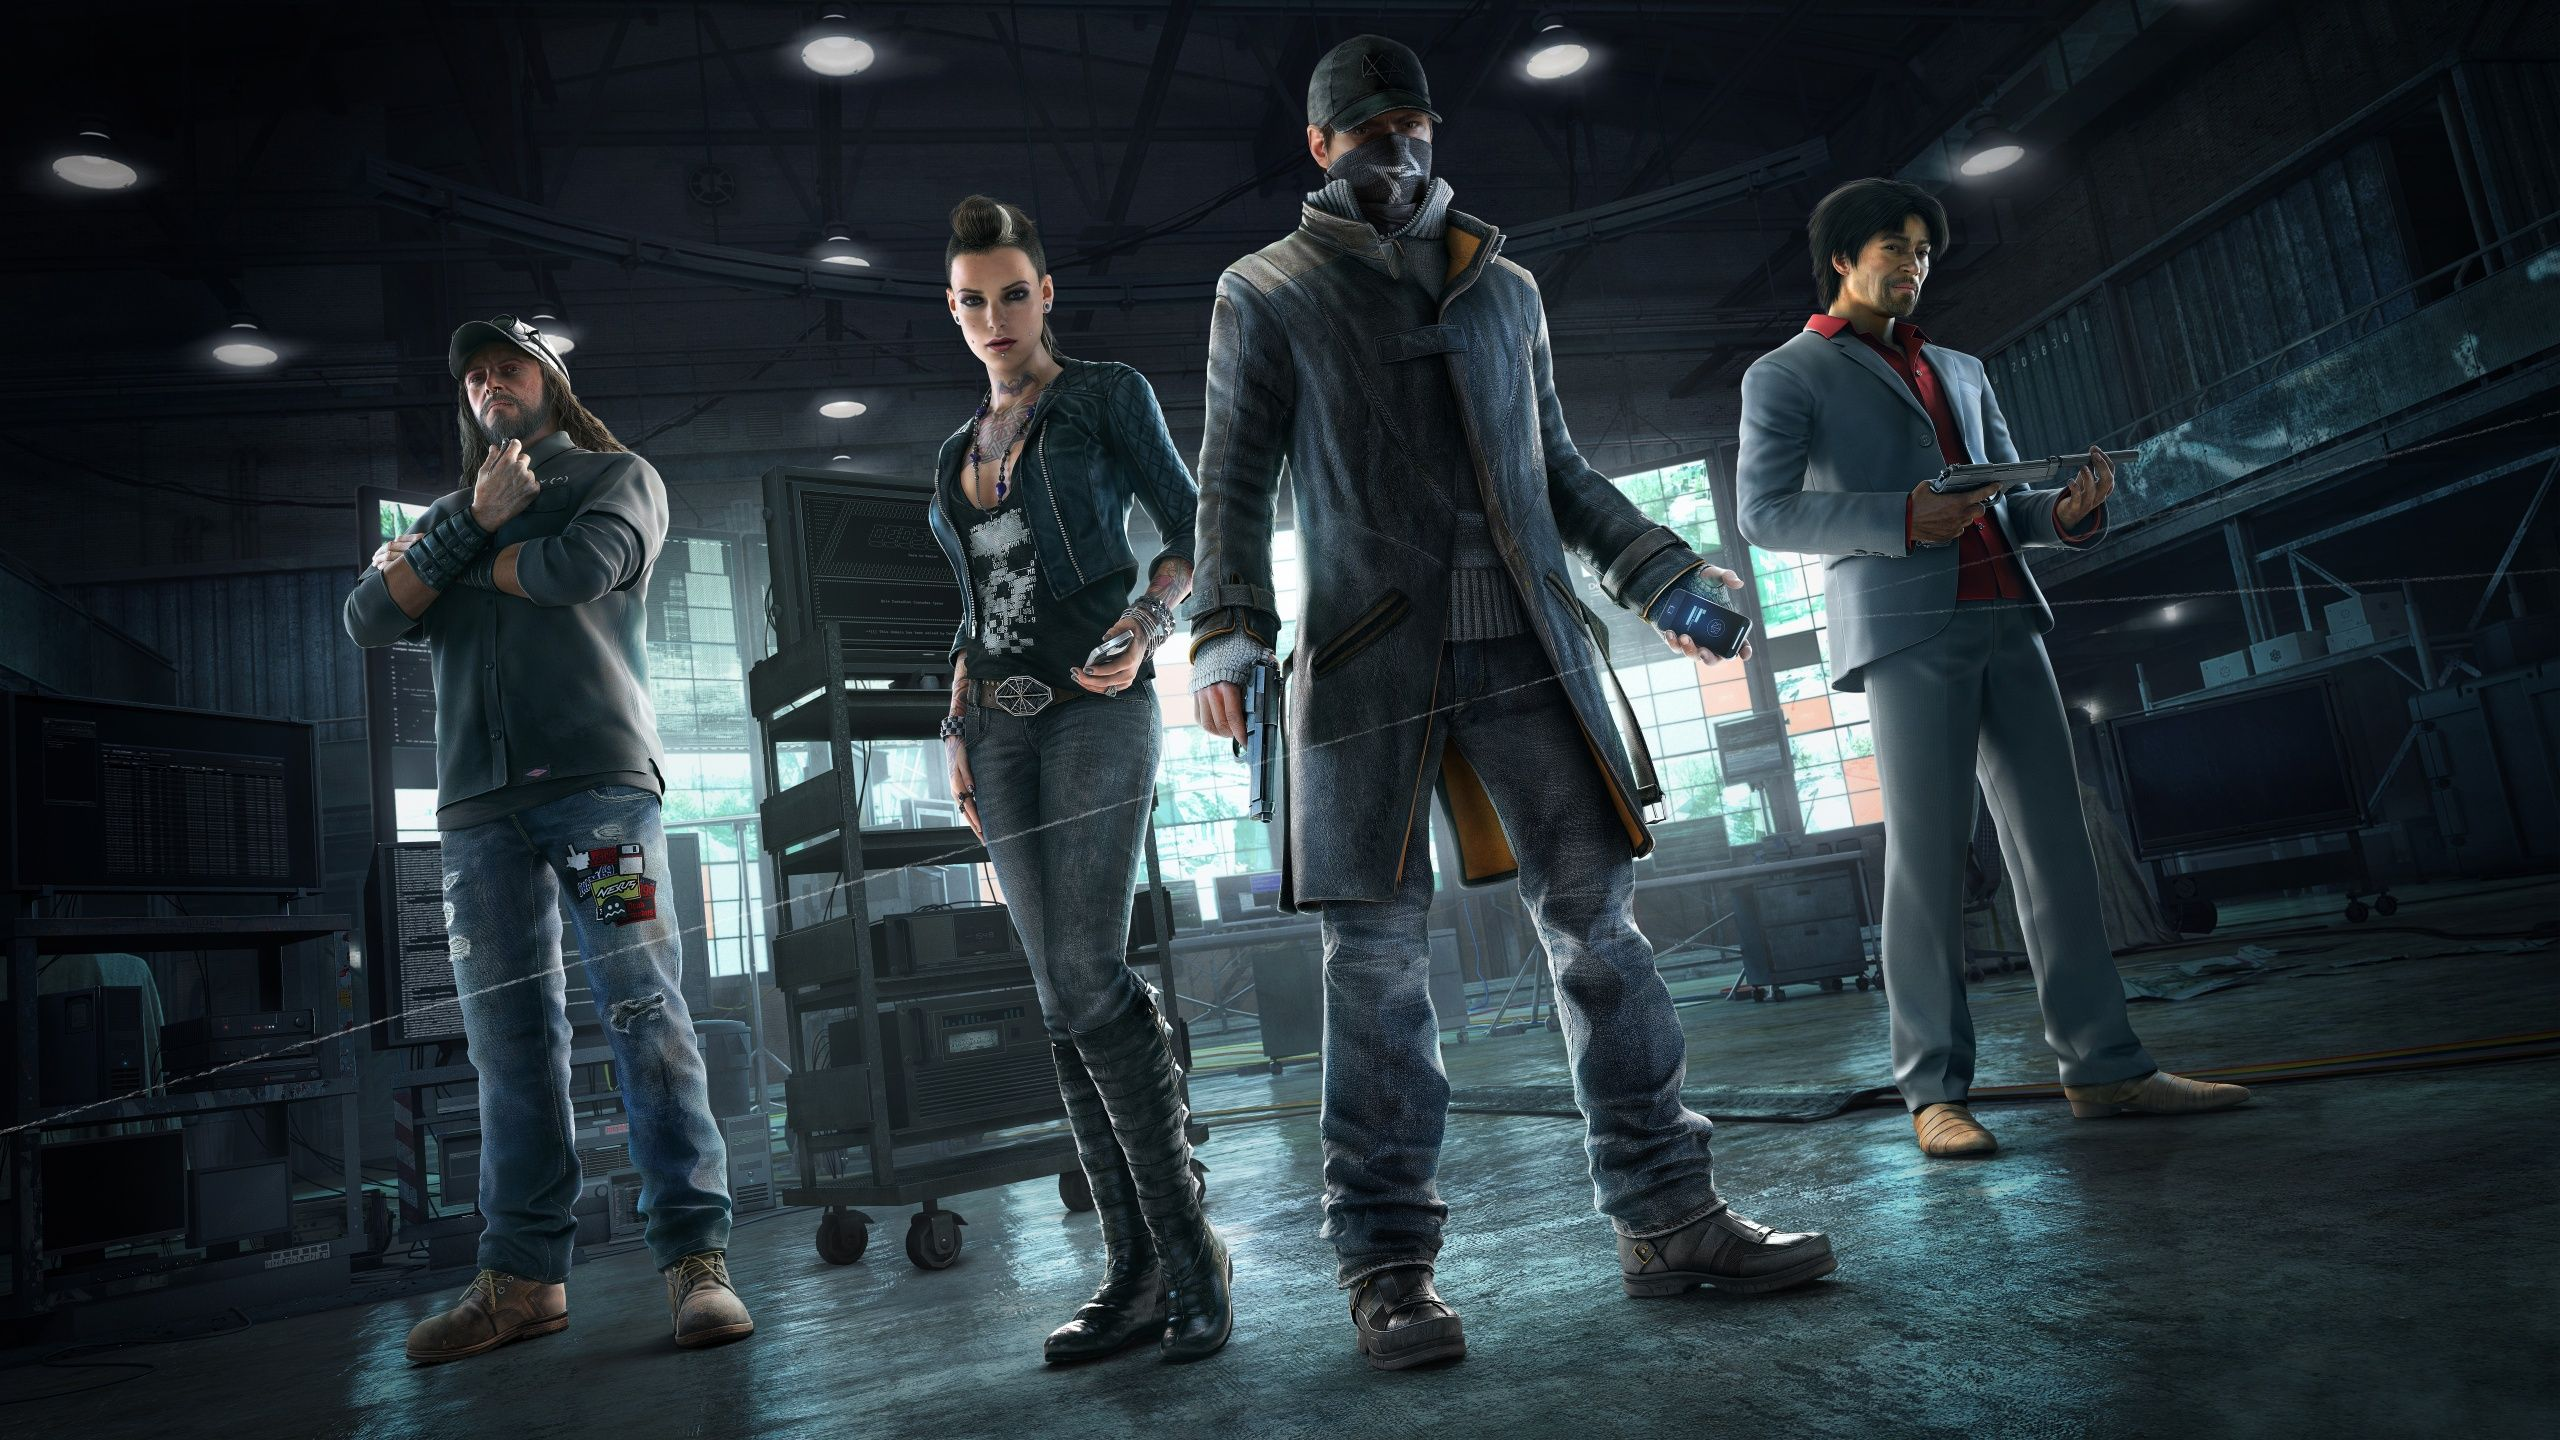 Watch dogs wrench nder wallpaper by digitalzky on hd wallpapers watch dogs wrench nder wallpaper by digitalzky on voltagebd Gallery